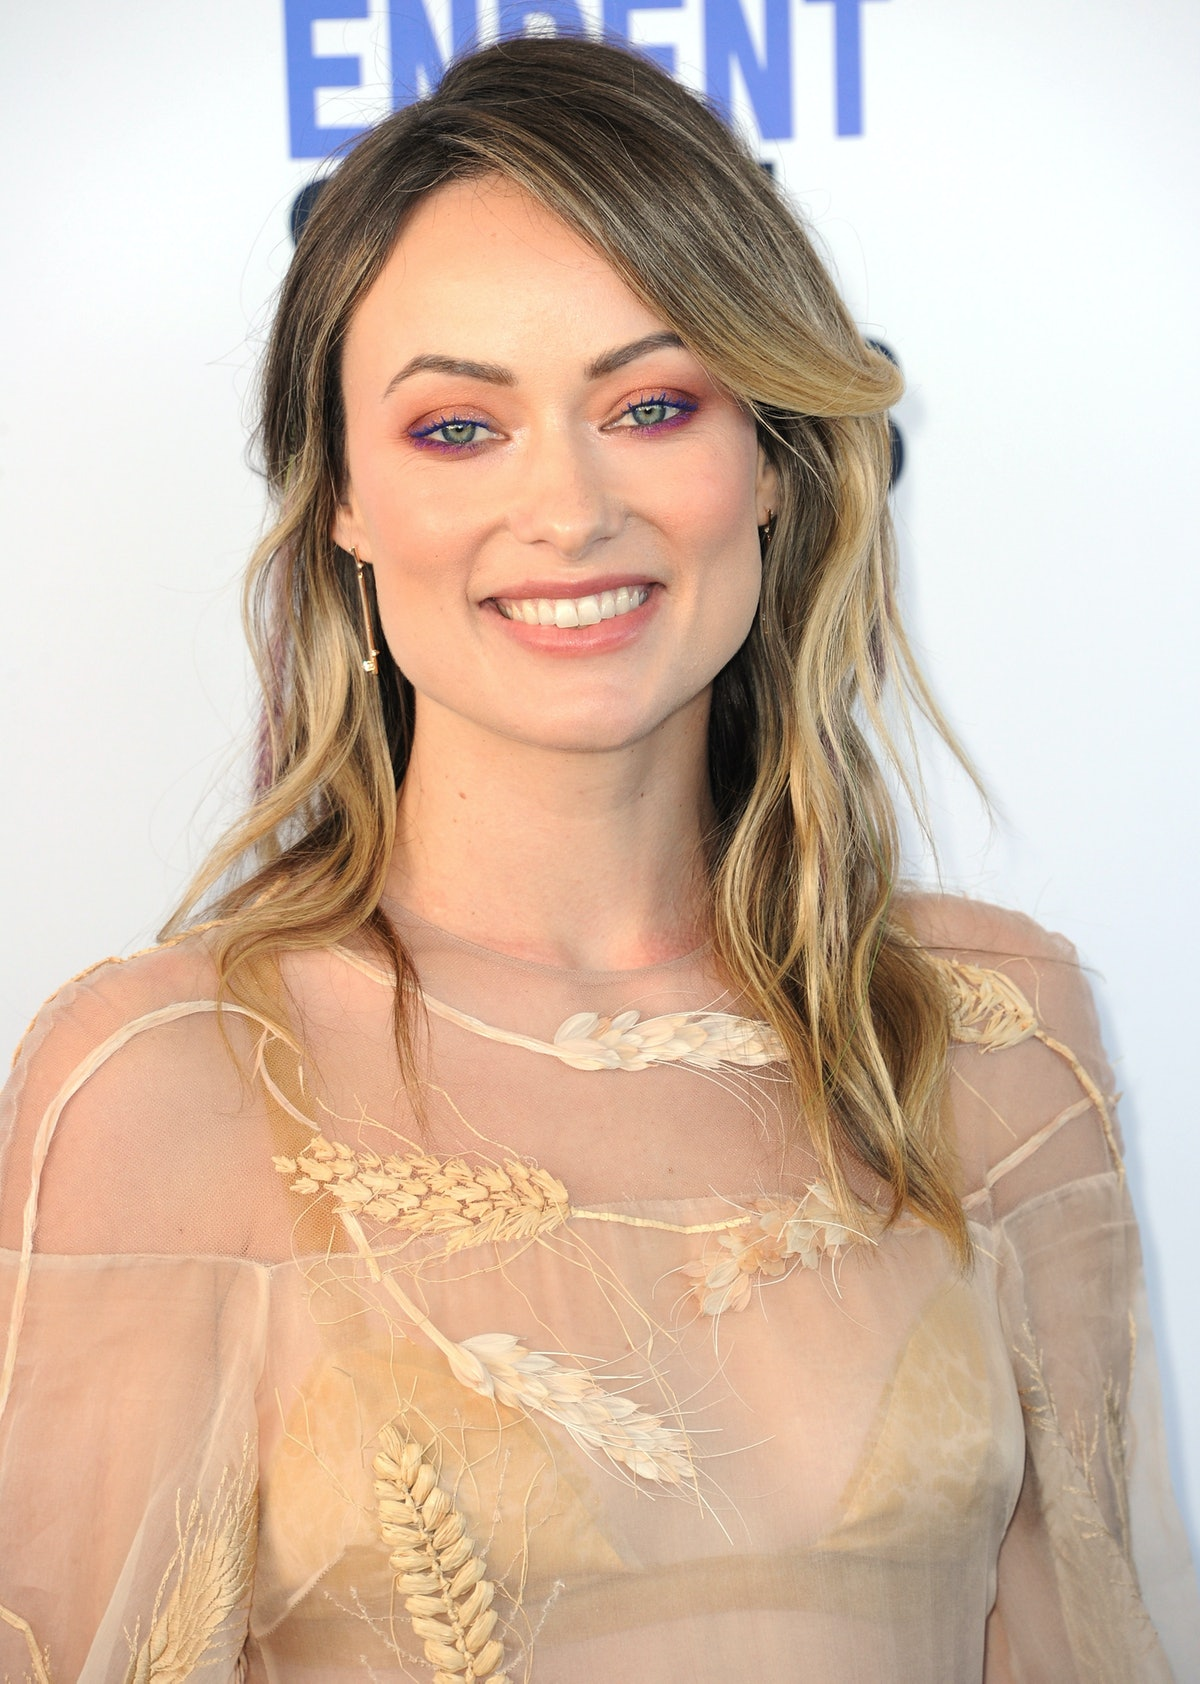 Olivia Wilde and Harry Styles were spotted kissing on a yacht in Italy.